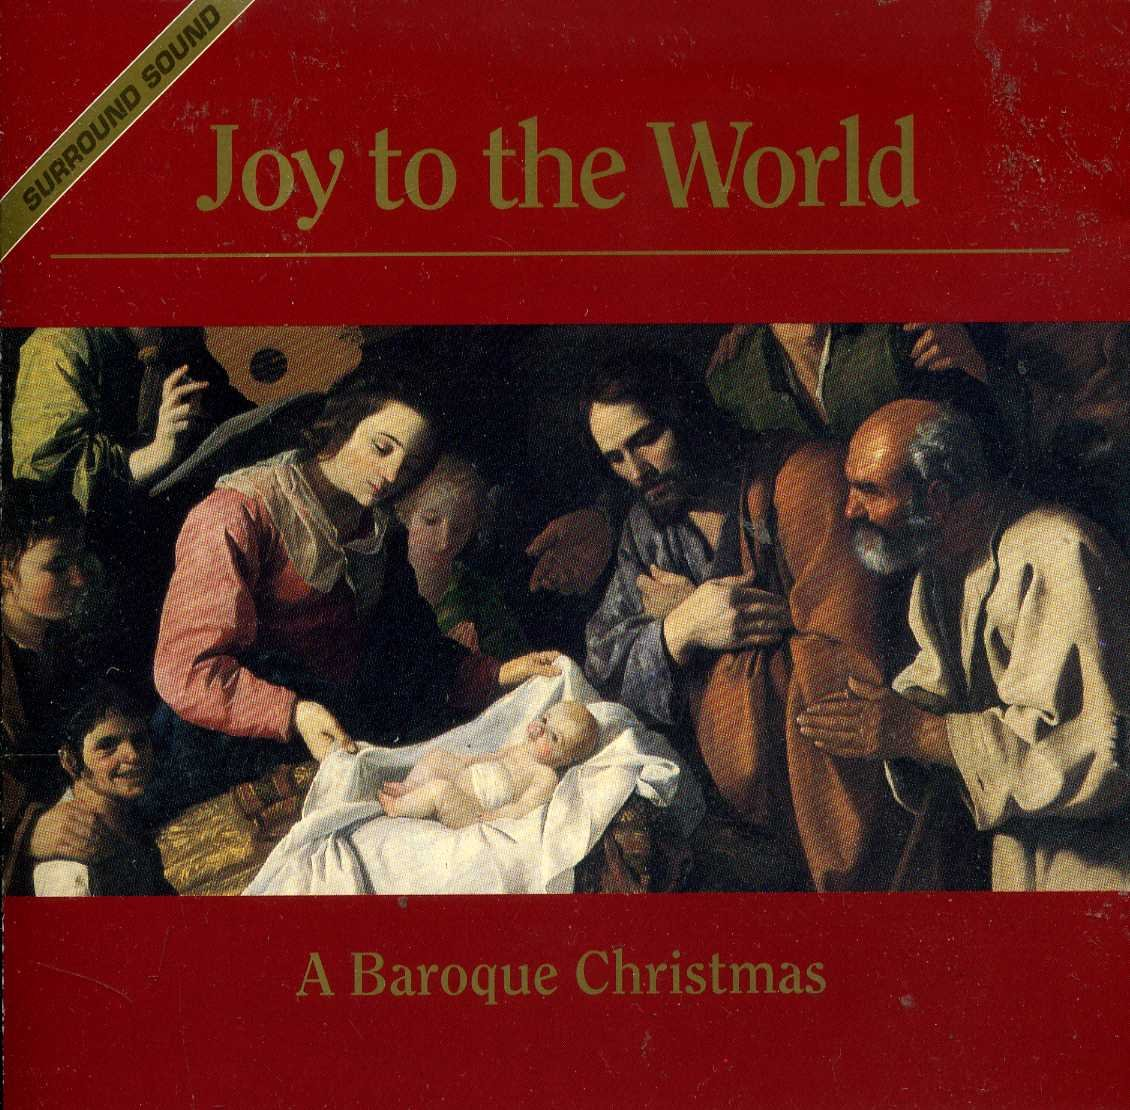 Joy to the World - A Baroque Christmas - Amazon.com Music